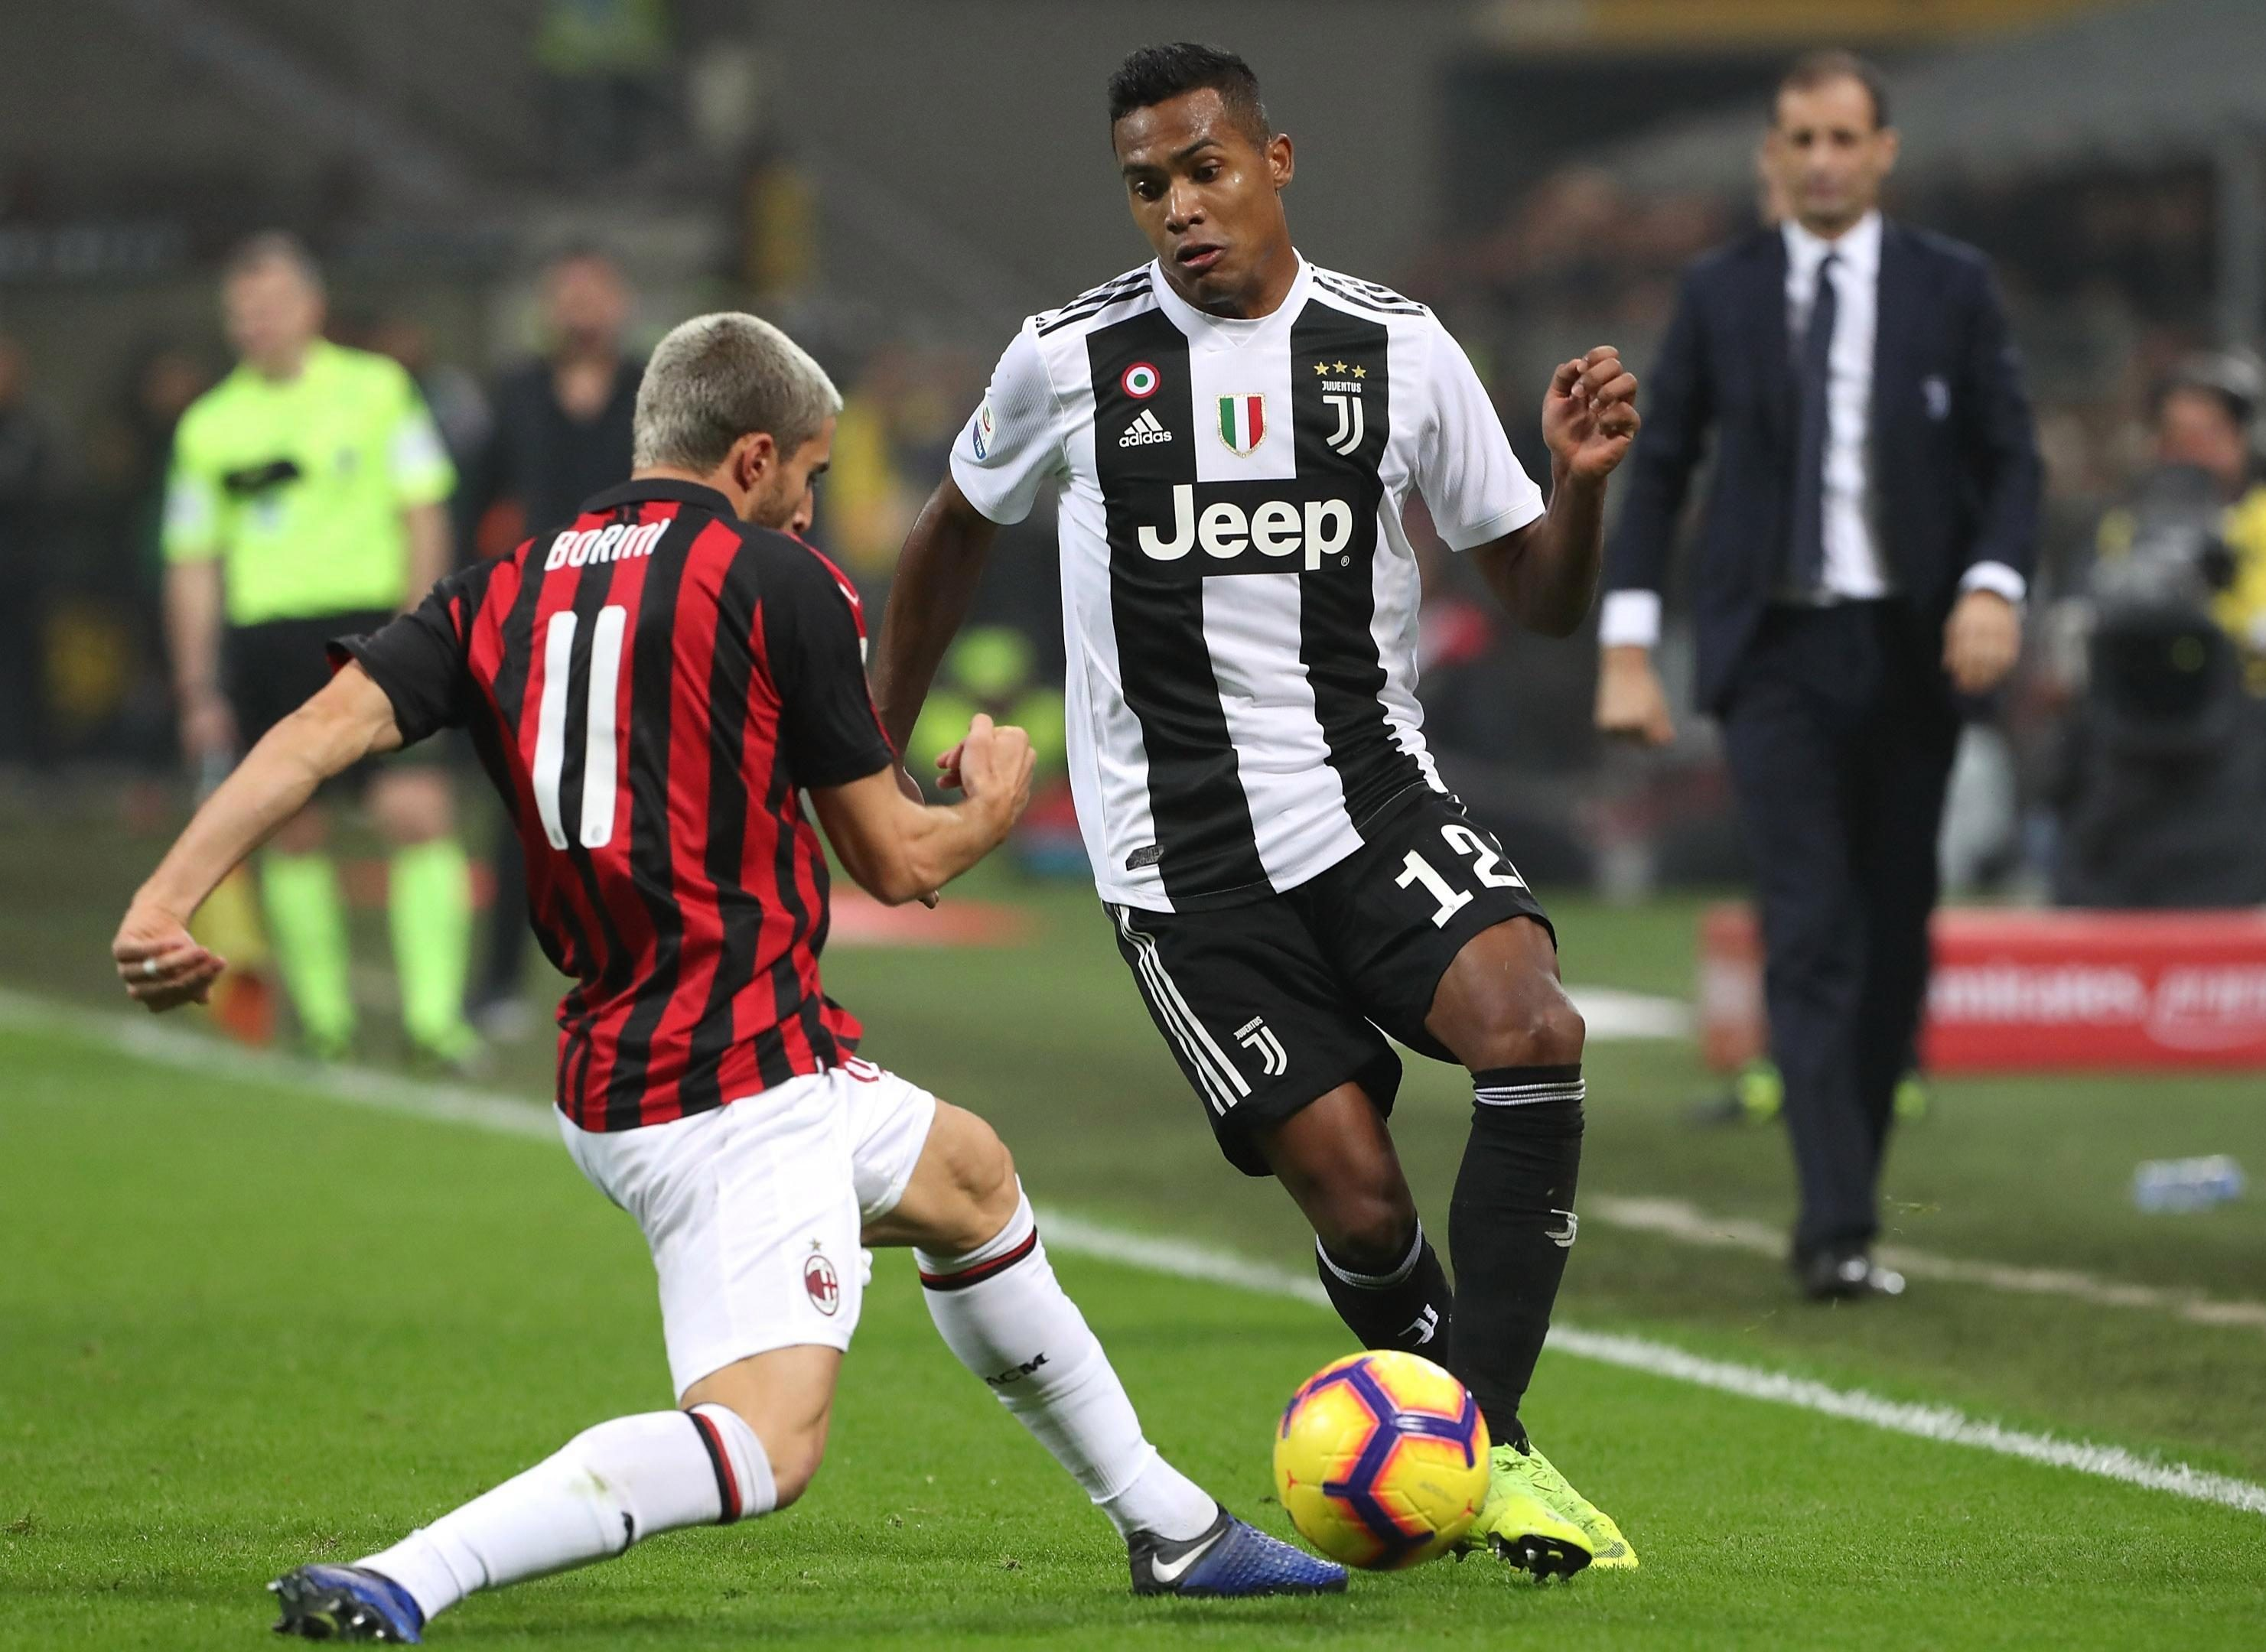 Sandro has been at Juventus since 2016 after joining from Porto